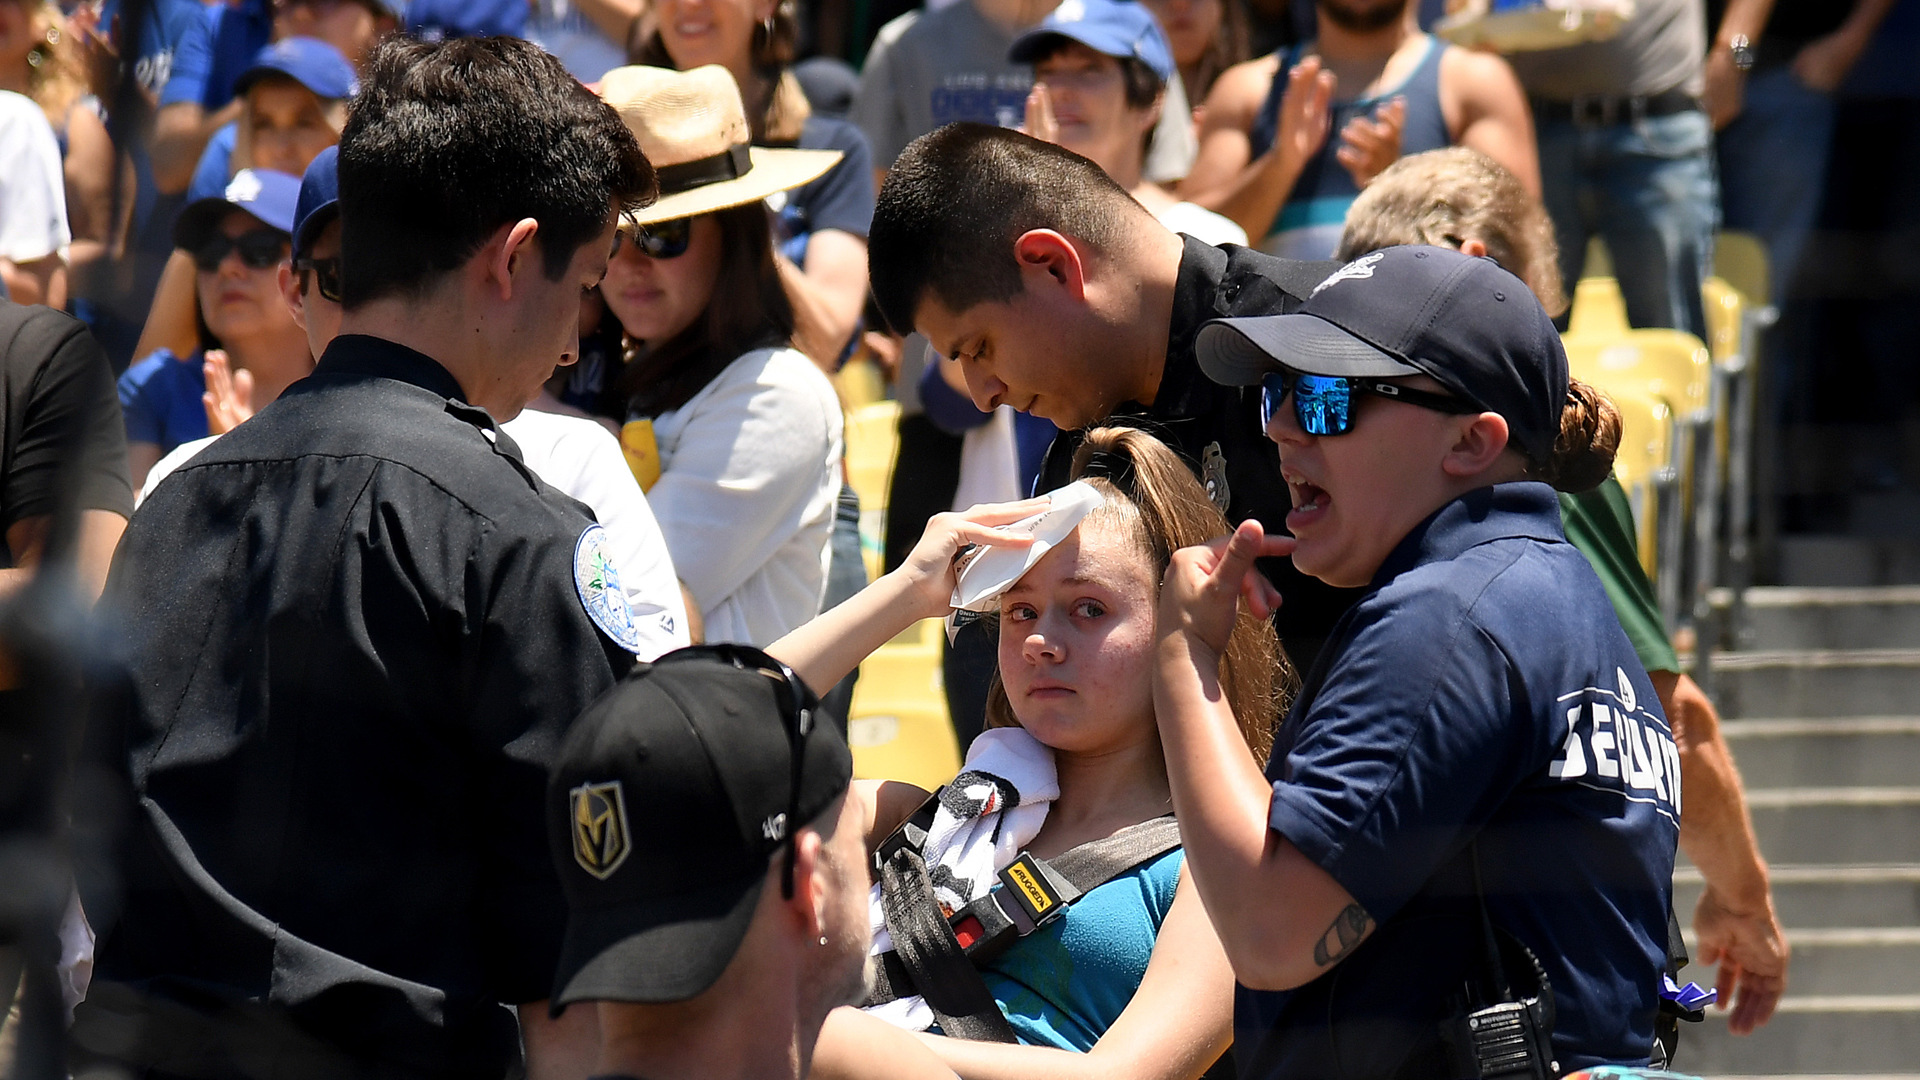 Kaitlyn Salazar, 13, puts an ice pack to her head after she was hit by a foul ball off the bat of Cody Bellinger #35 of the Los Angeles Dodgers during the first inning against the Colorado Rockies at Dodger Stadium on June 23, 2019 in Los Angeles, California. (Credit: Harry How/Getty Images)